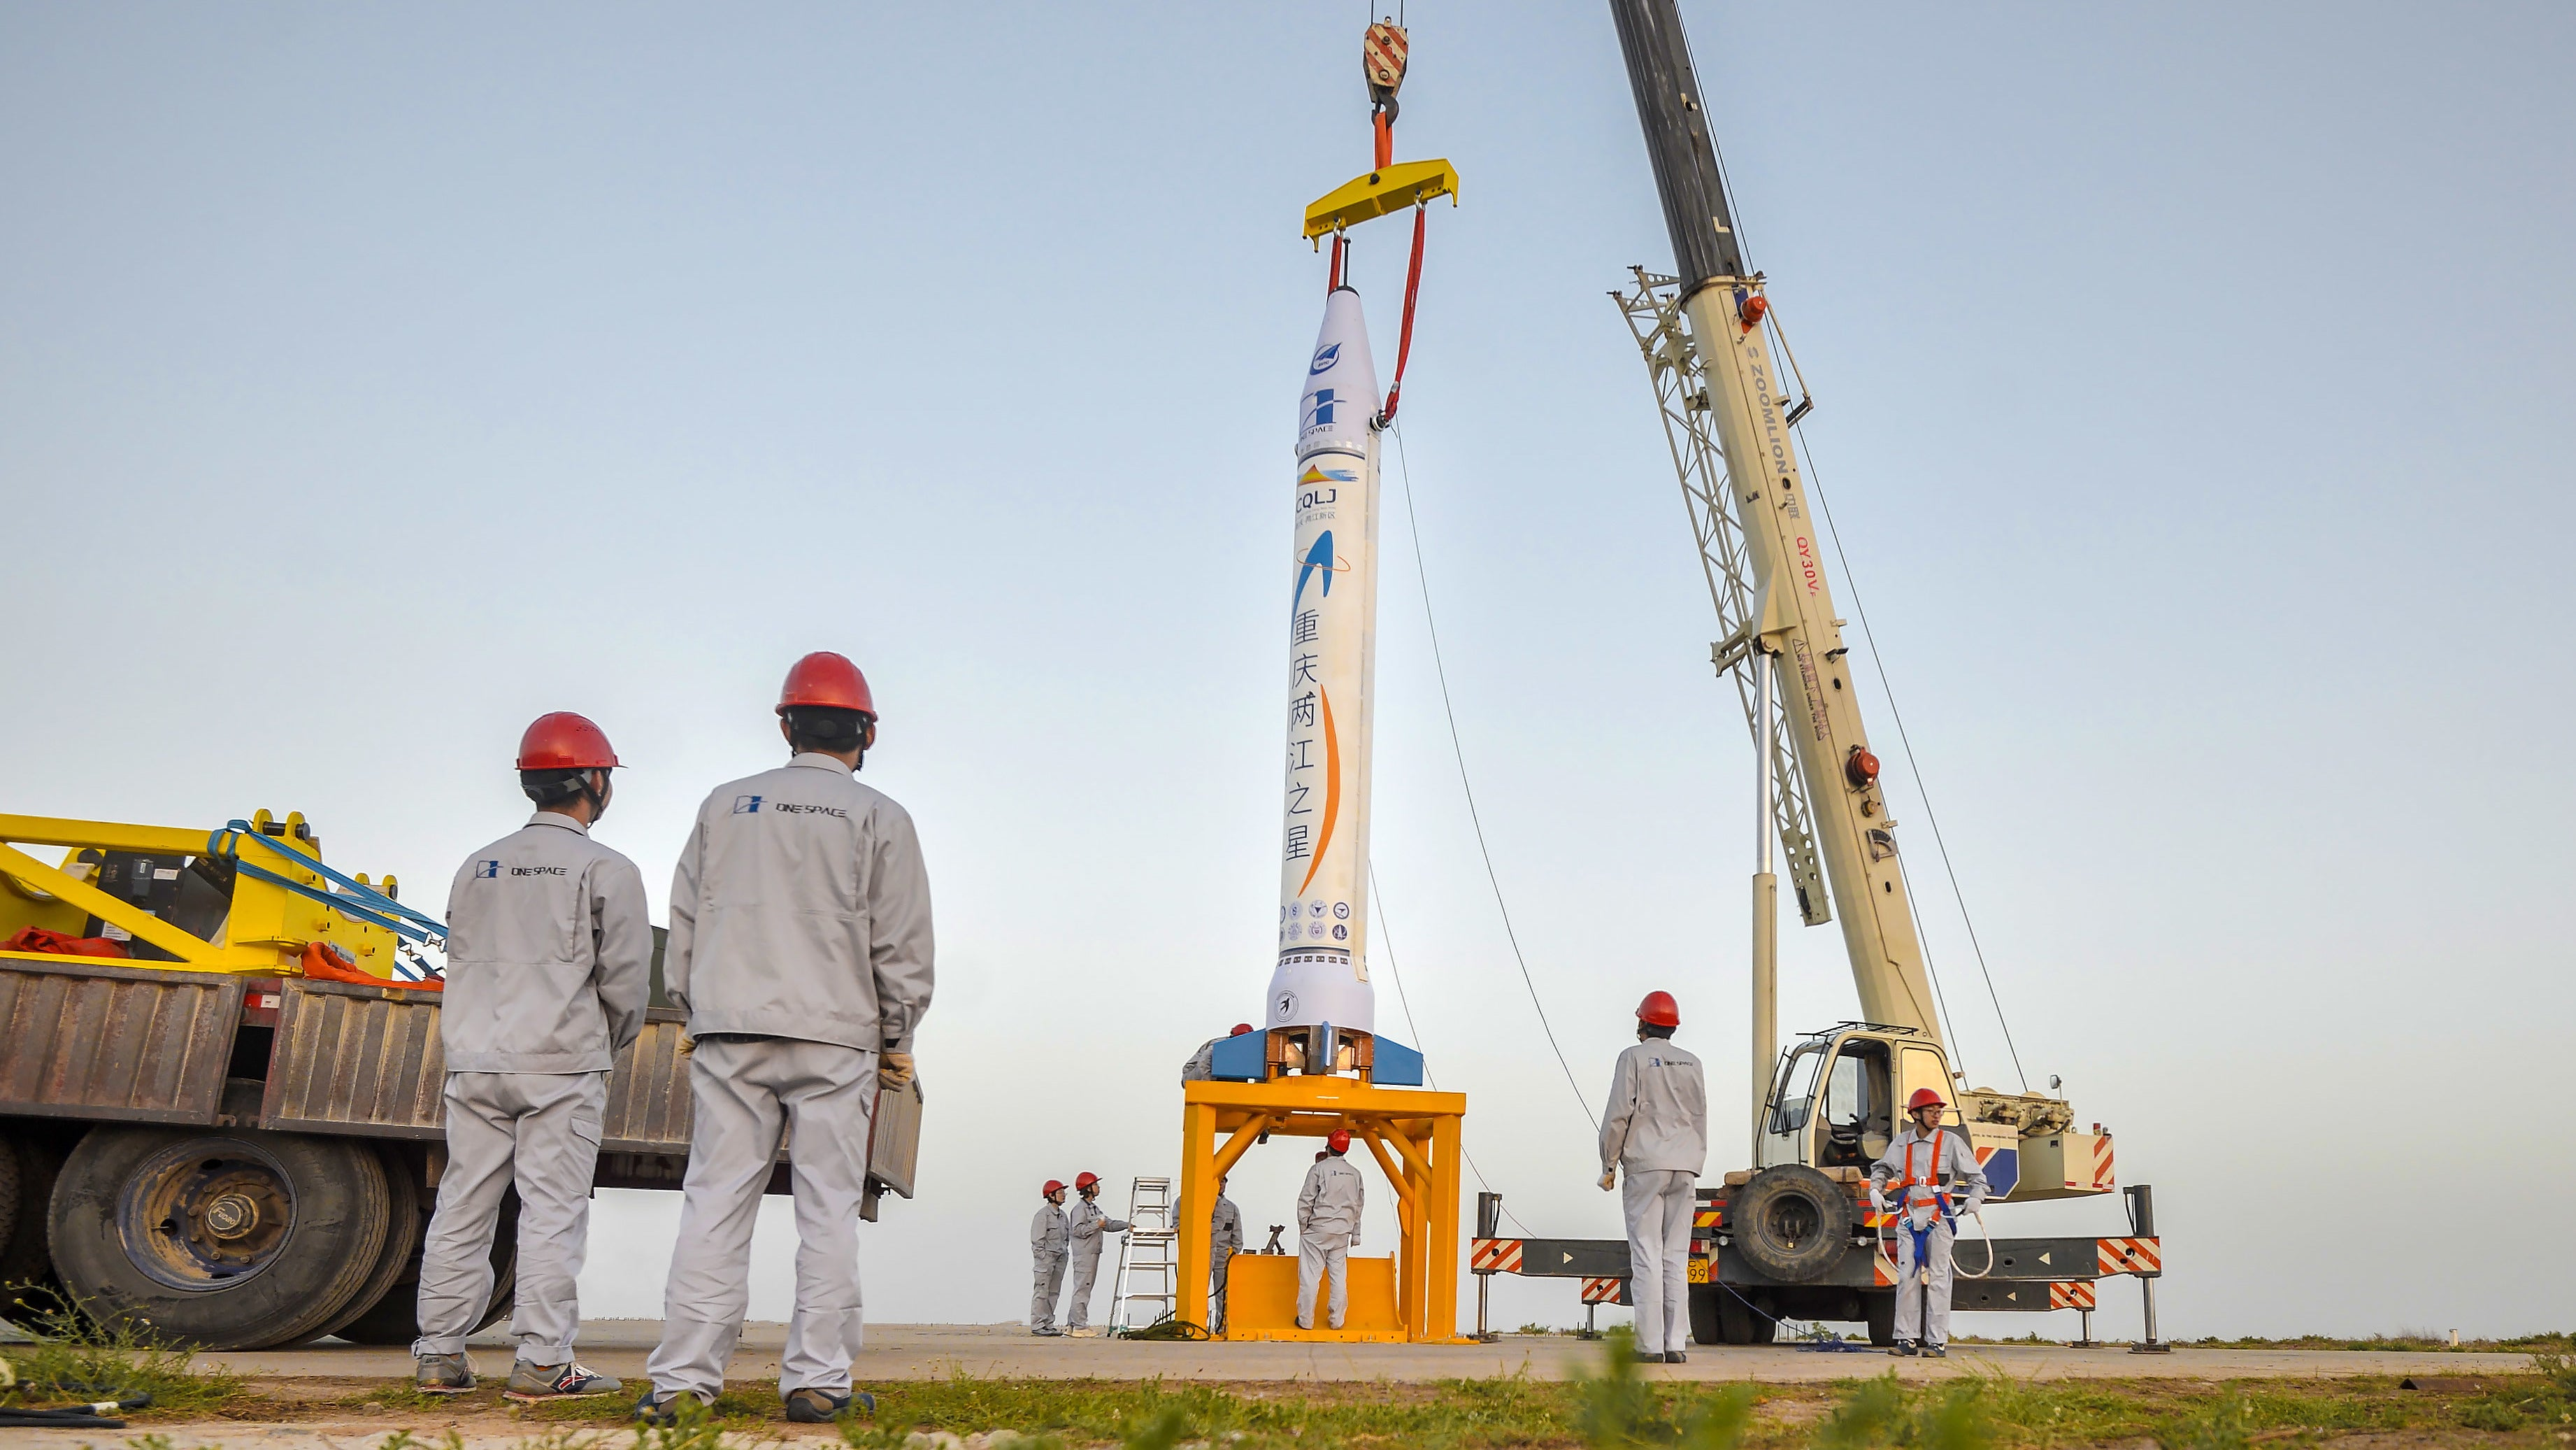 China's First Private Space Rocket Launch Ever Was Last Week